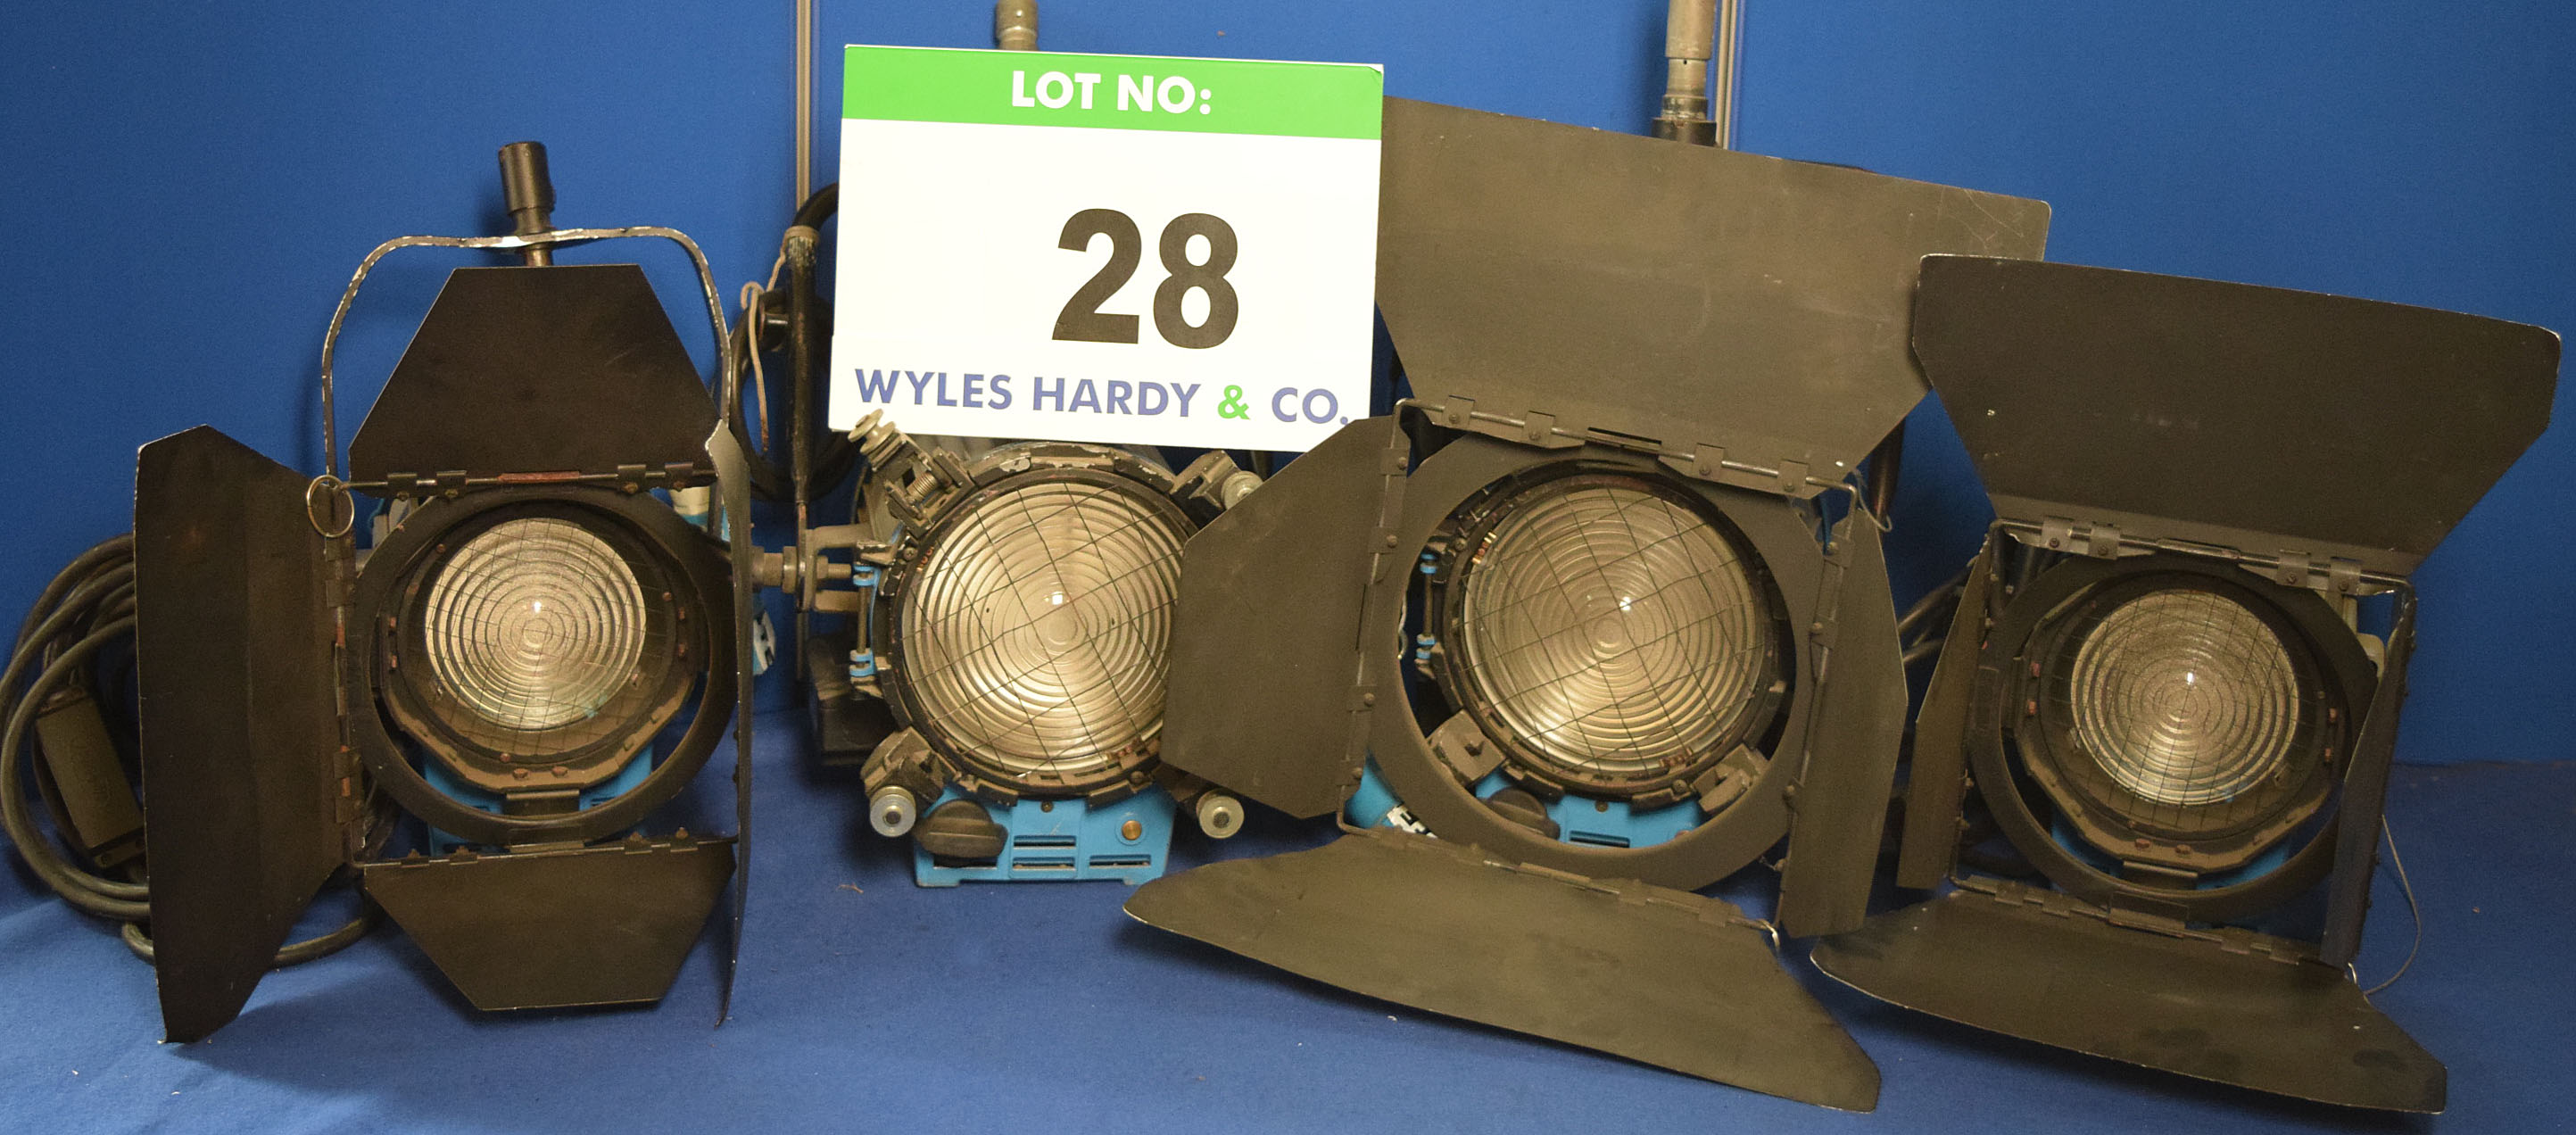 Lot 28 - Four ARRI Studio 1000 1000W Lights, Three with fitted Barn Doors and All with Stirrup Mounts and